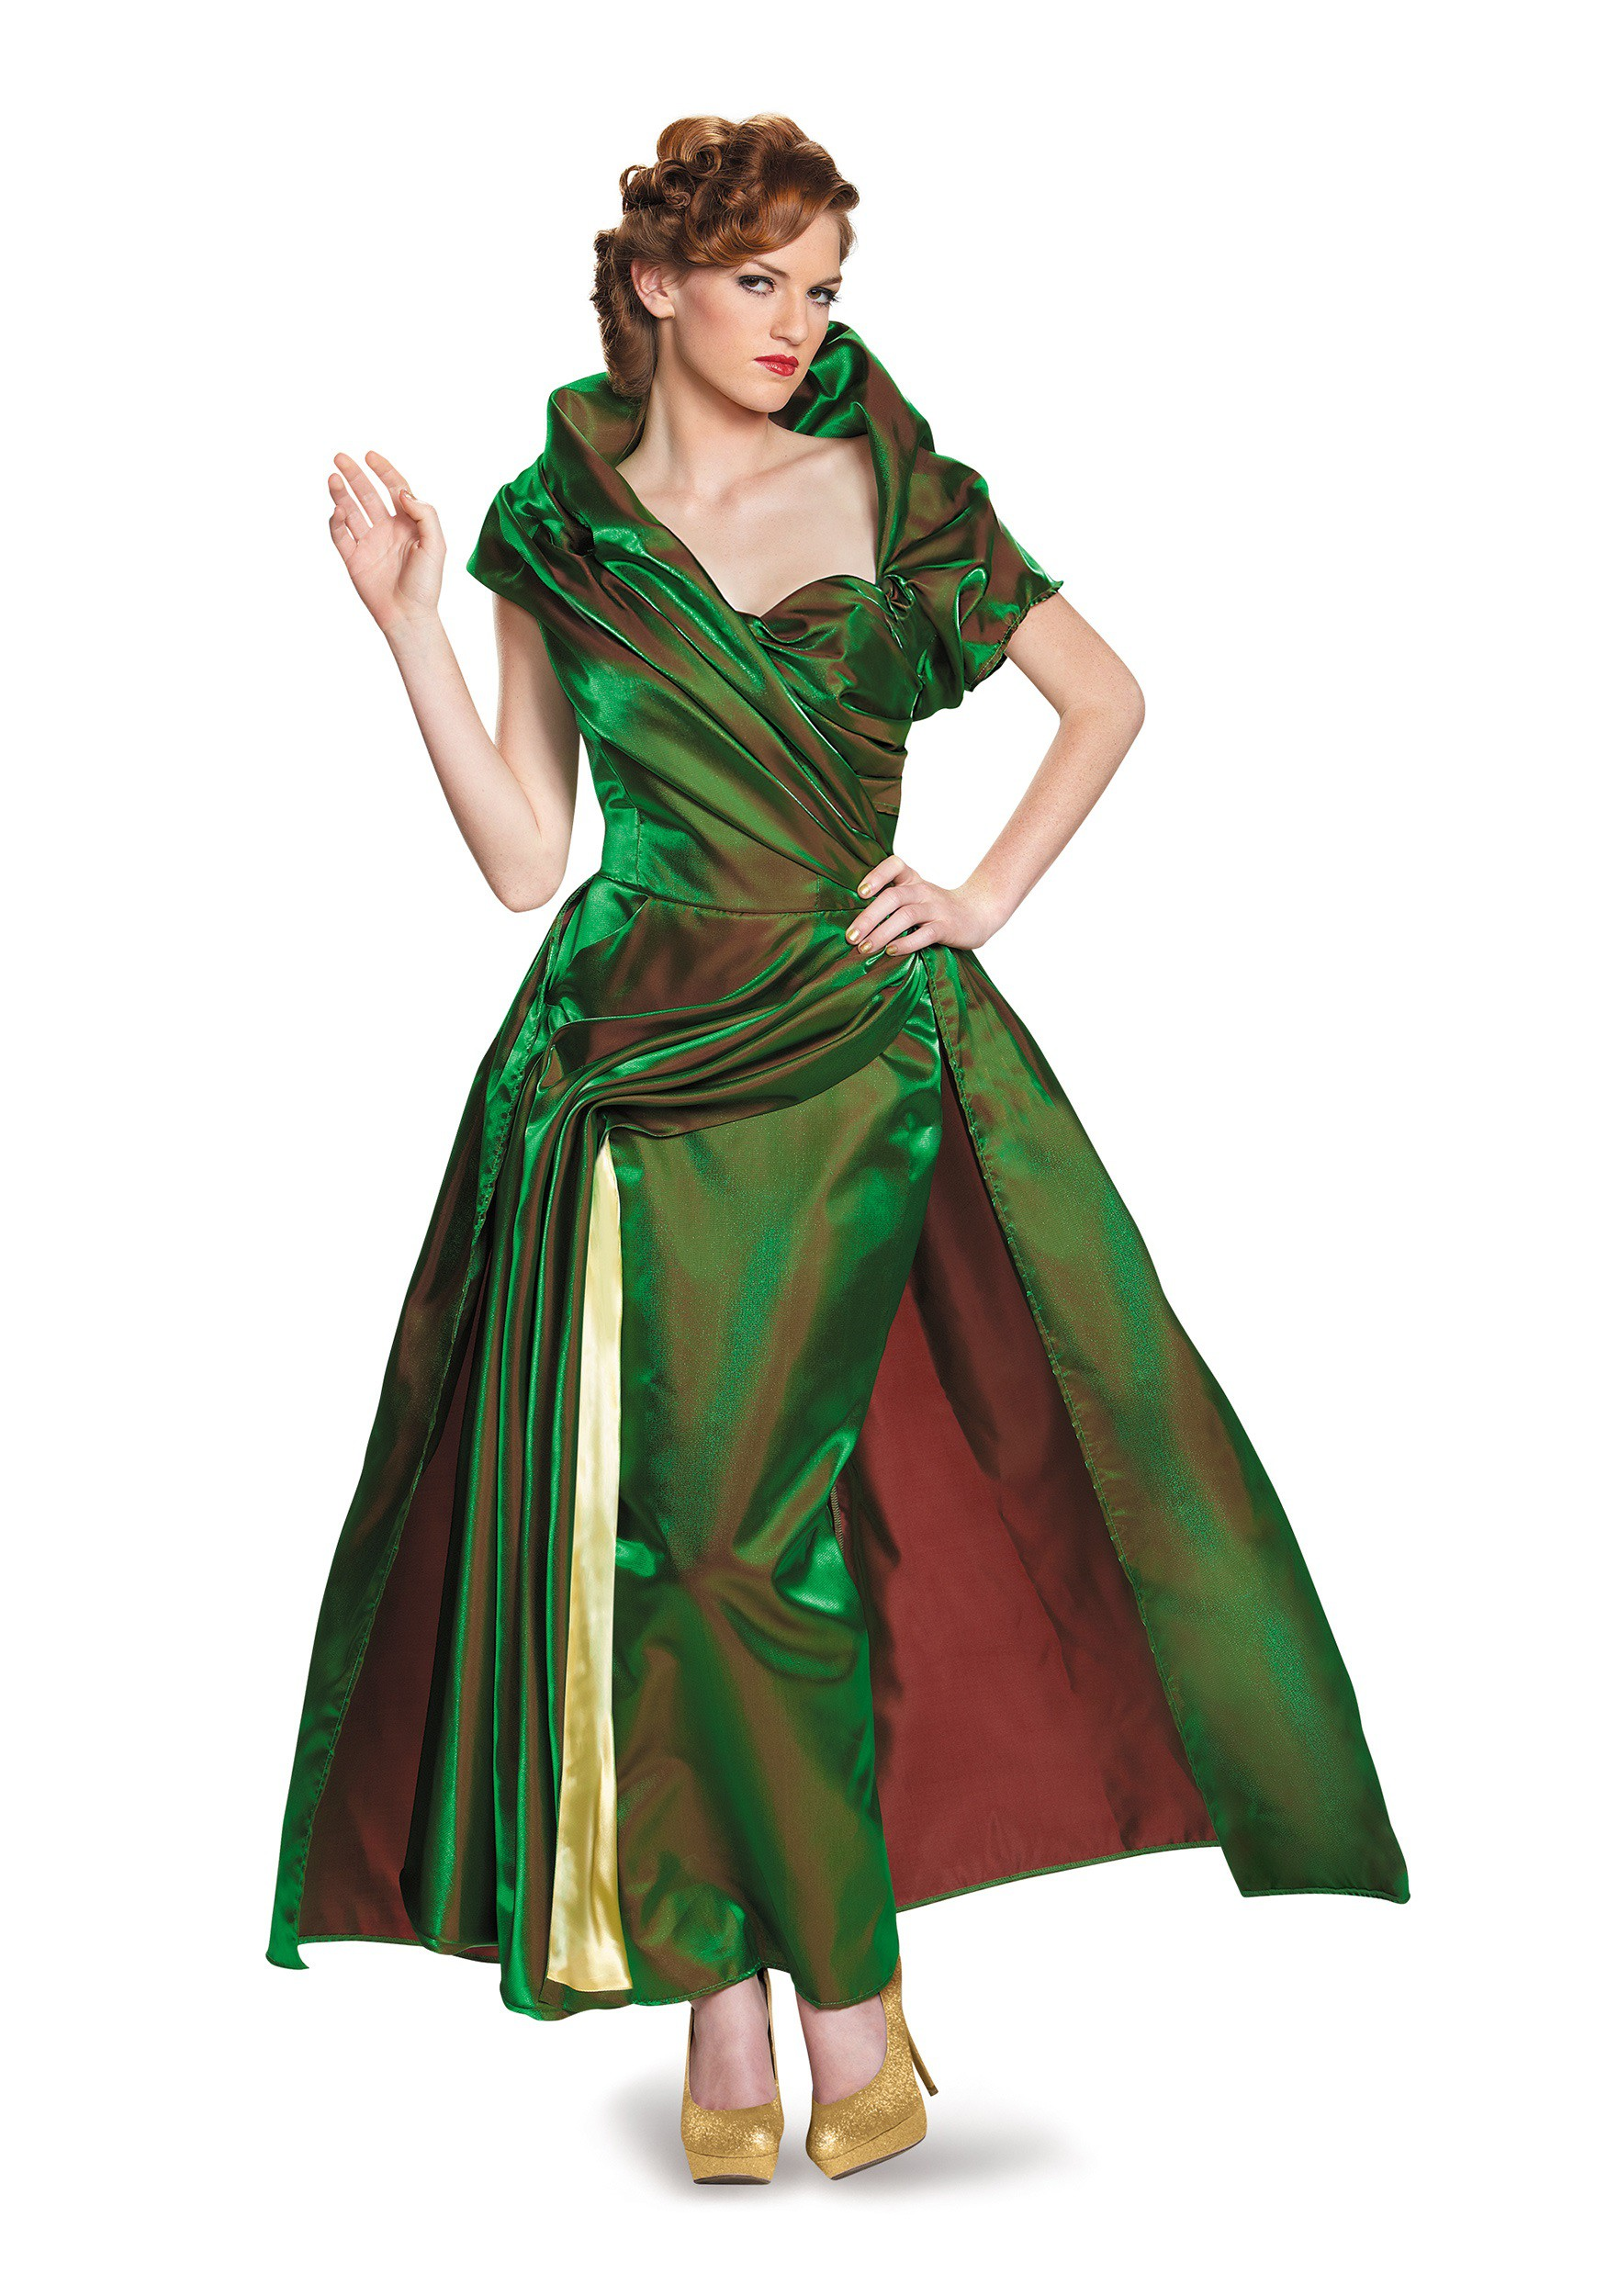 Women's Prestige Lady Tremaine Costume